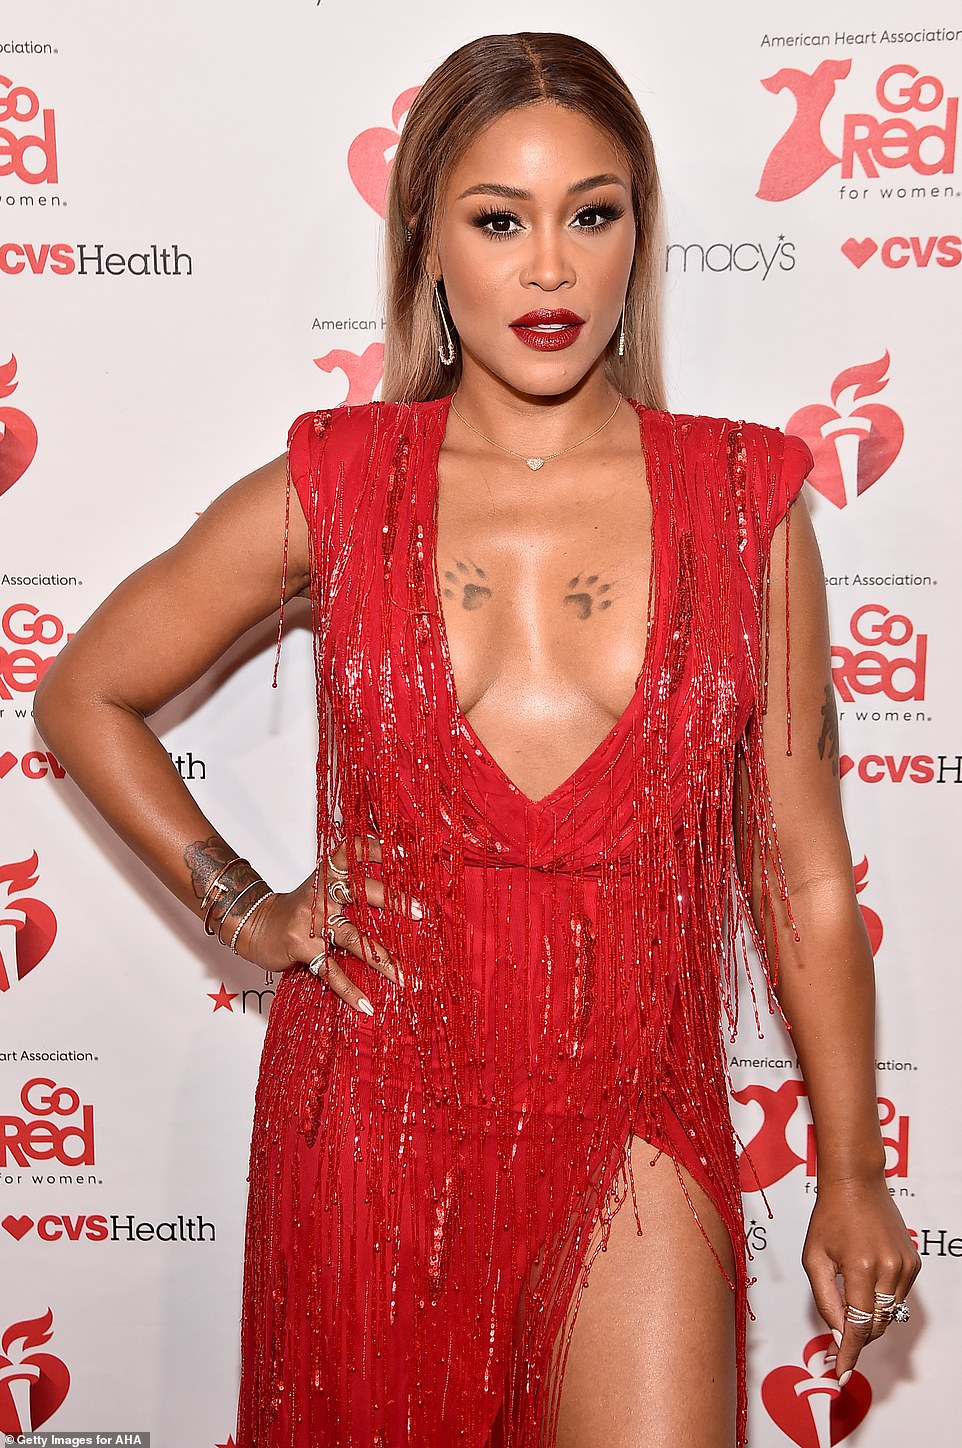 Red-dy for it: Rapper Eve also left little to the imagination in a heavily tasseled dress with a deep plunging neckline